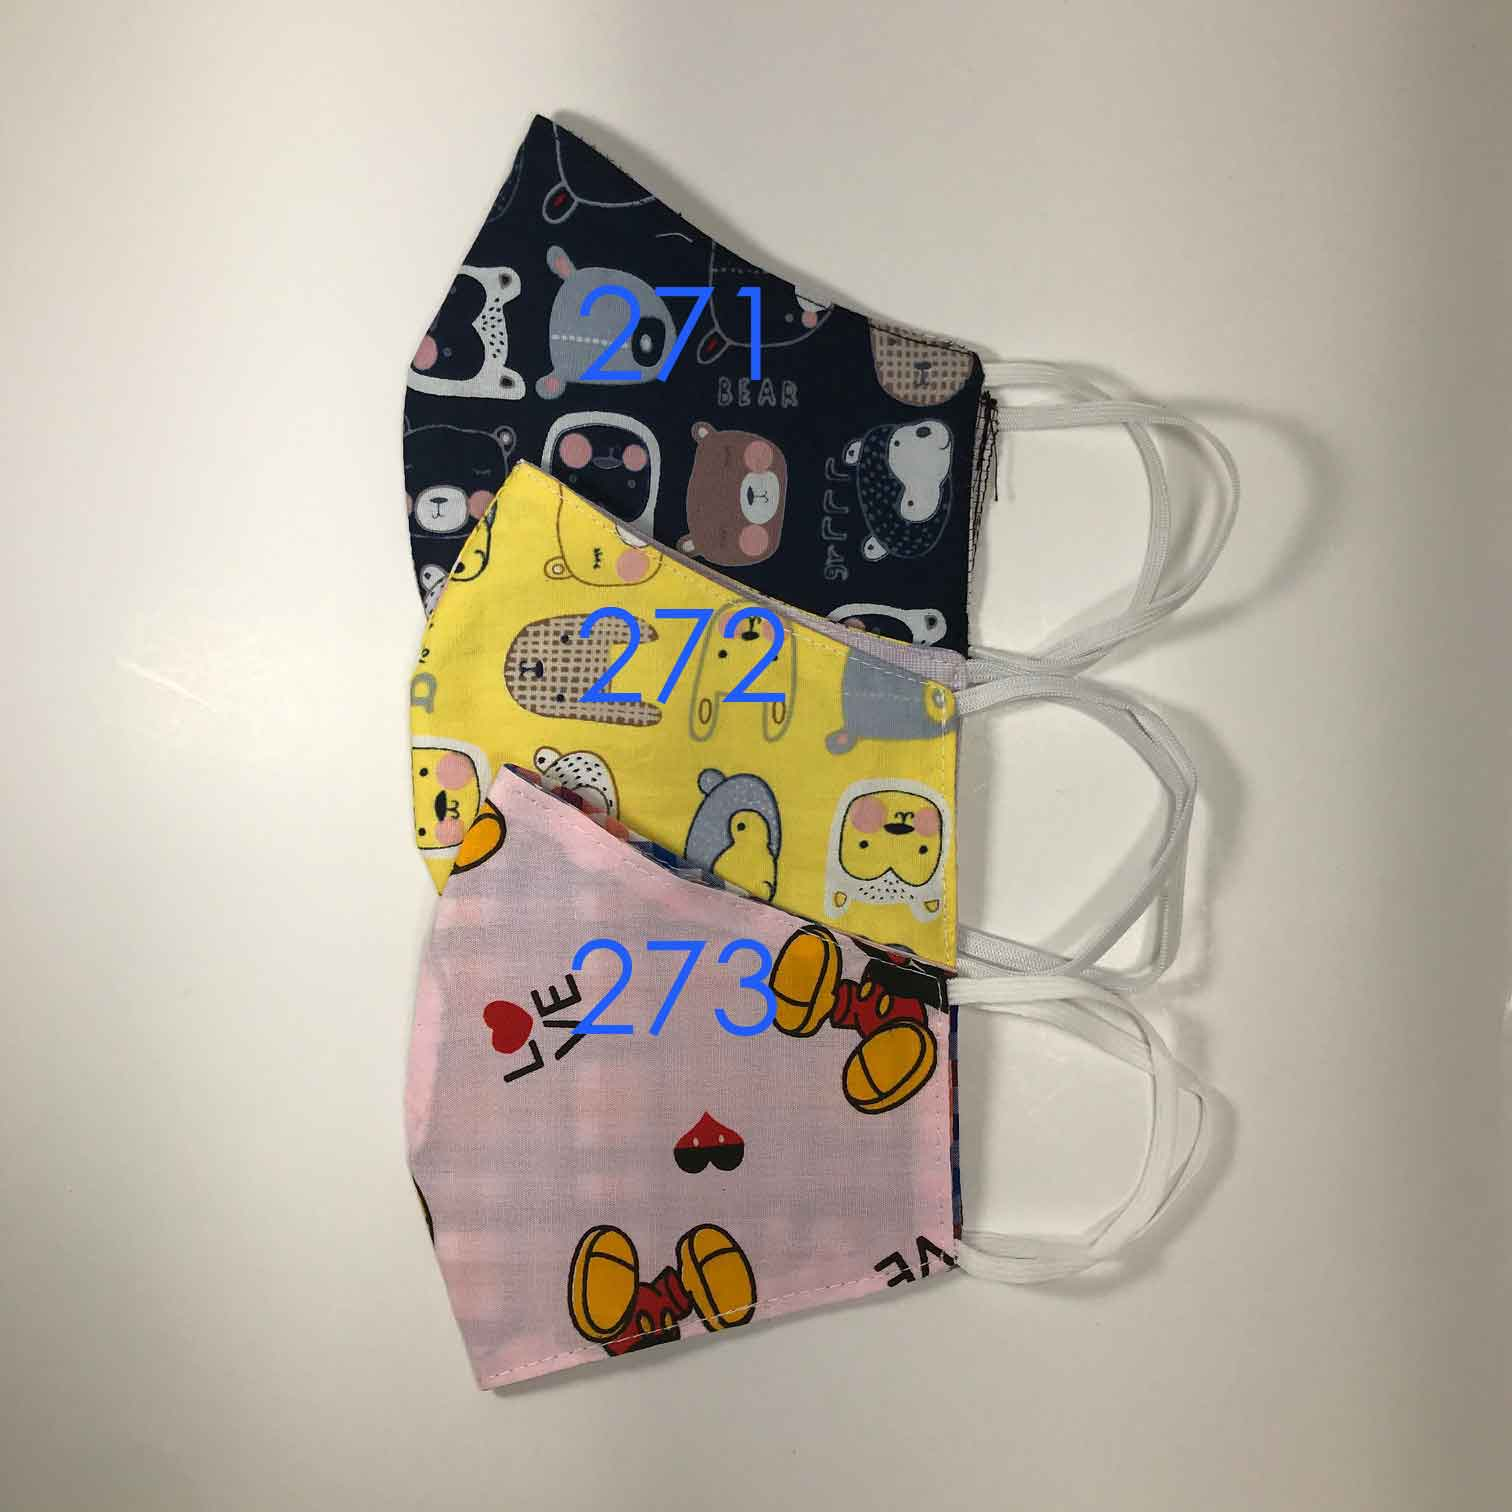 Handmade Cloth / Cotton Face Masks - Reversible 3D Medium - 271-273